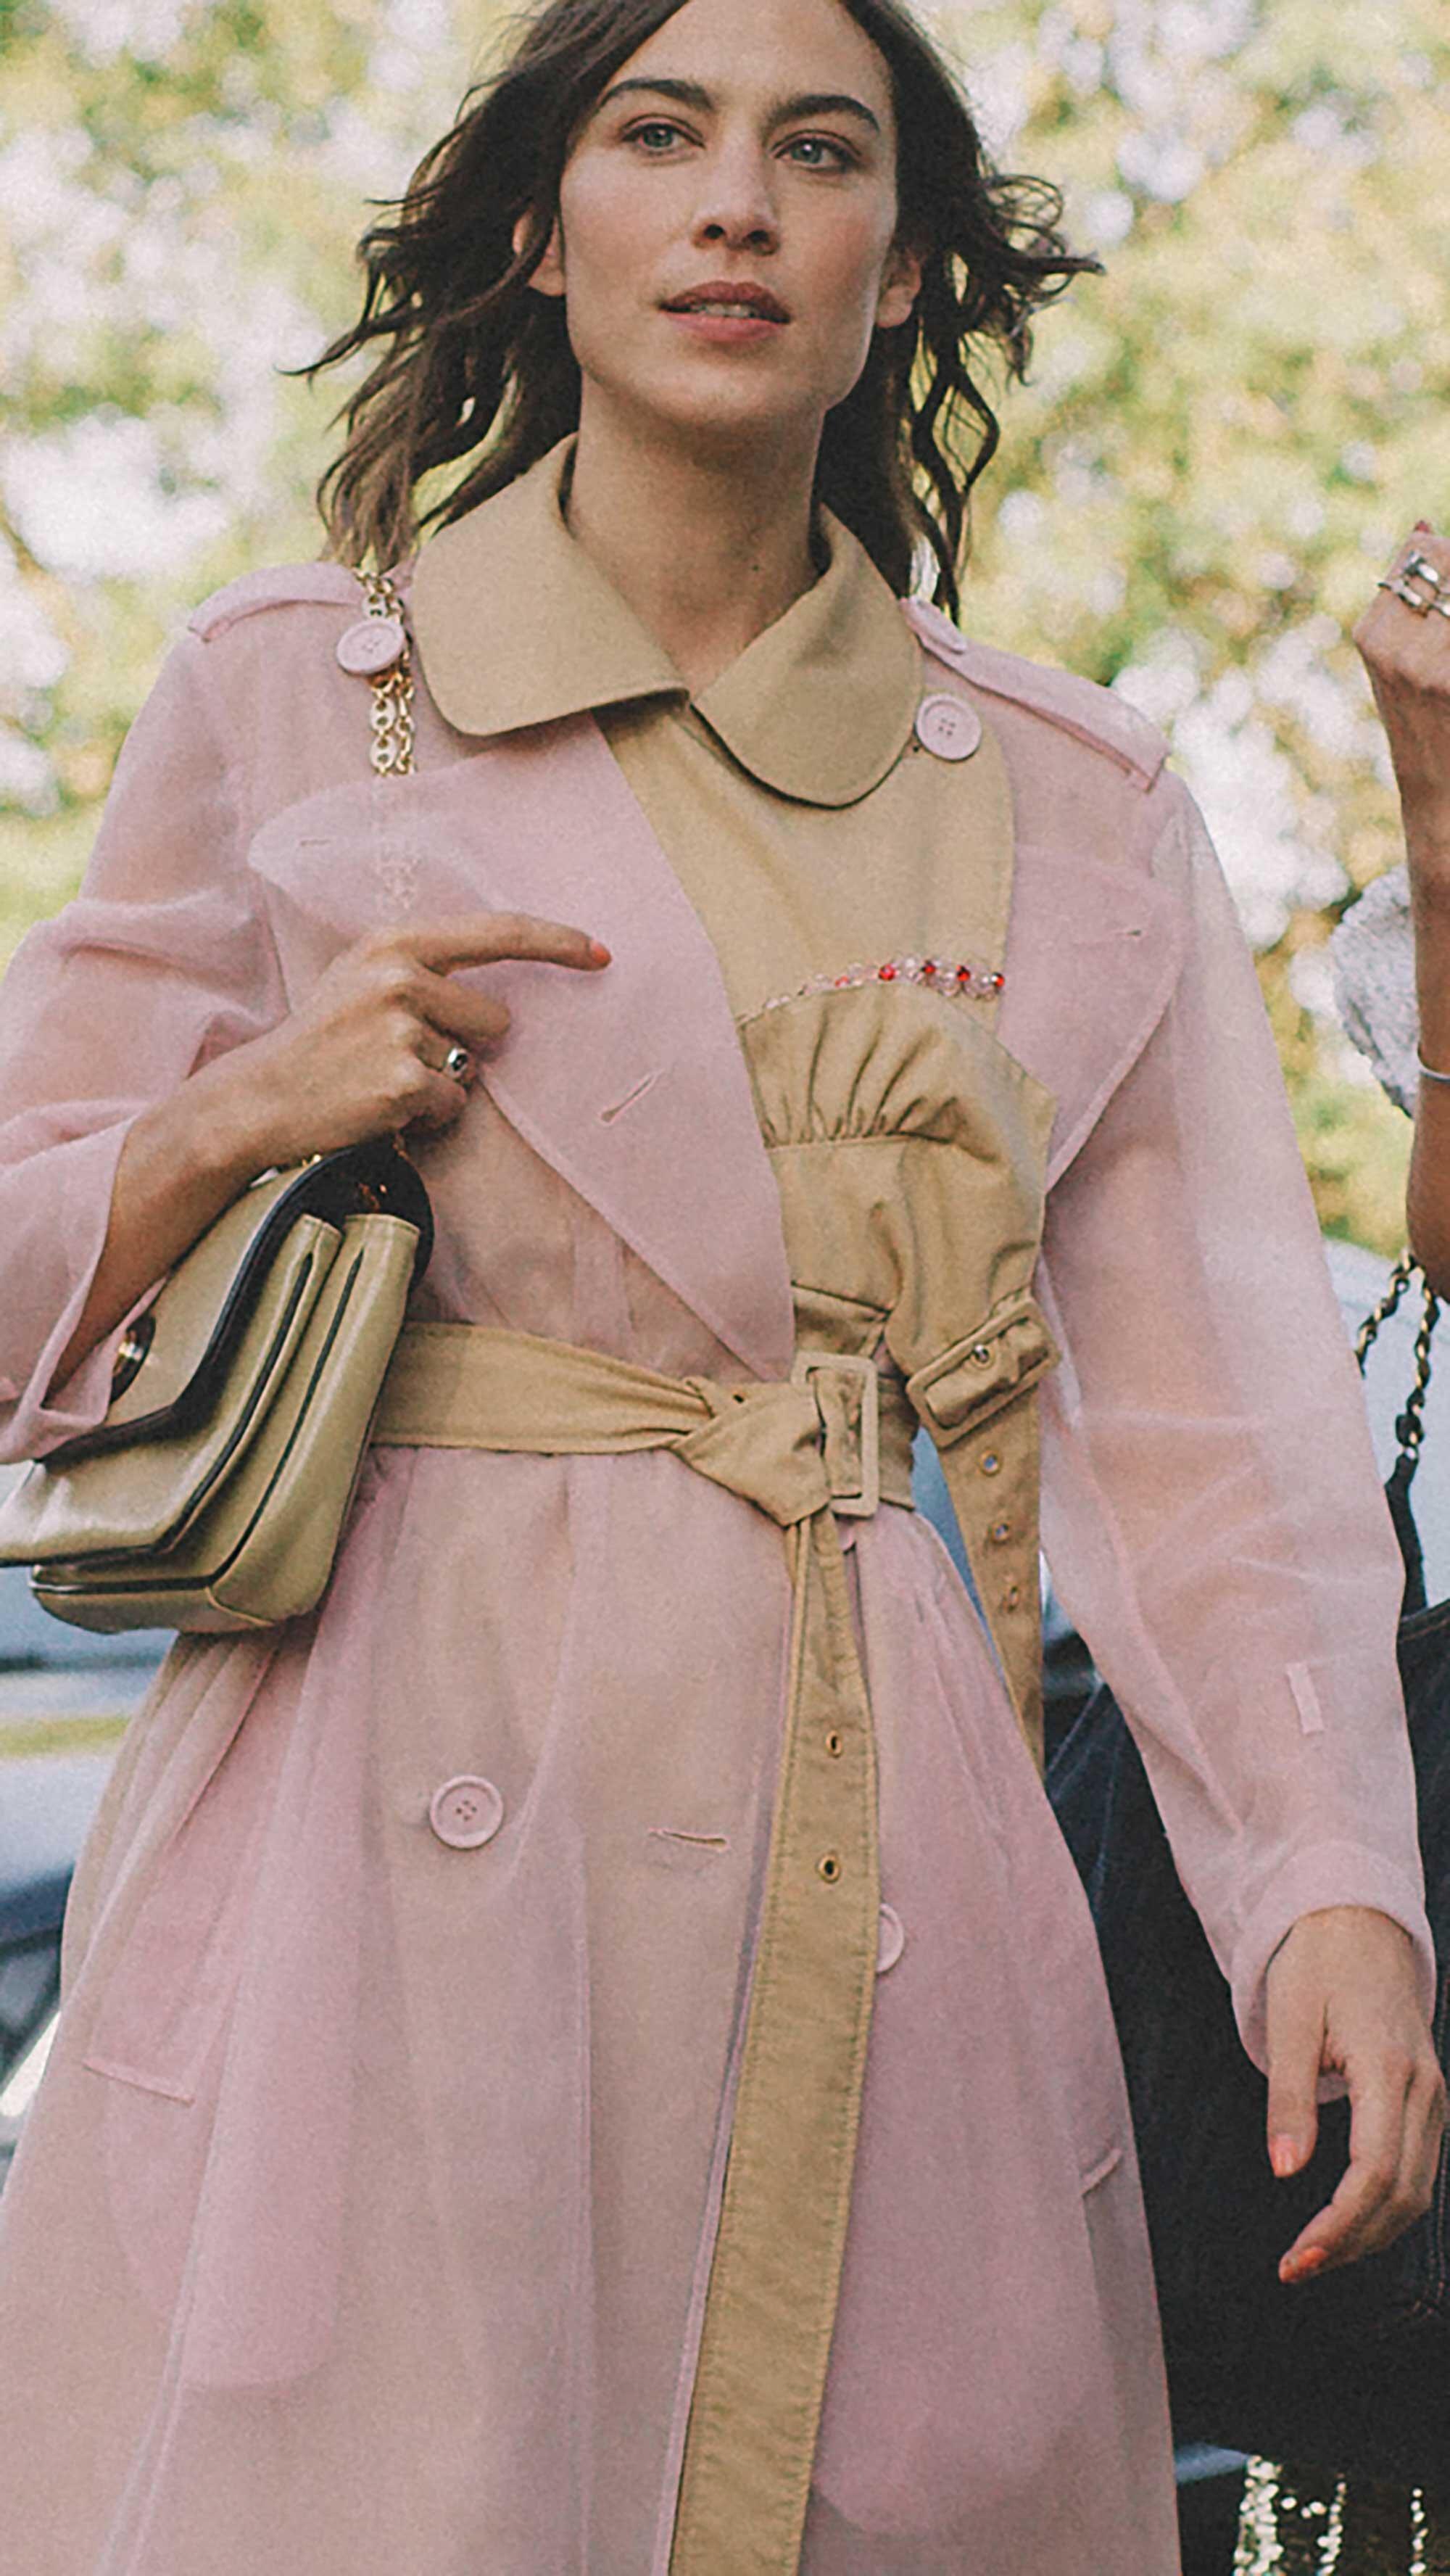 Best outfits of London Fashion Week street style 2019 -106.jpg